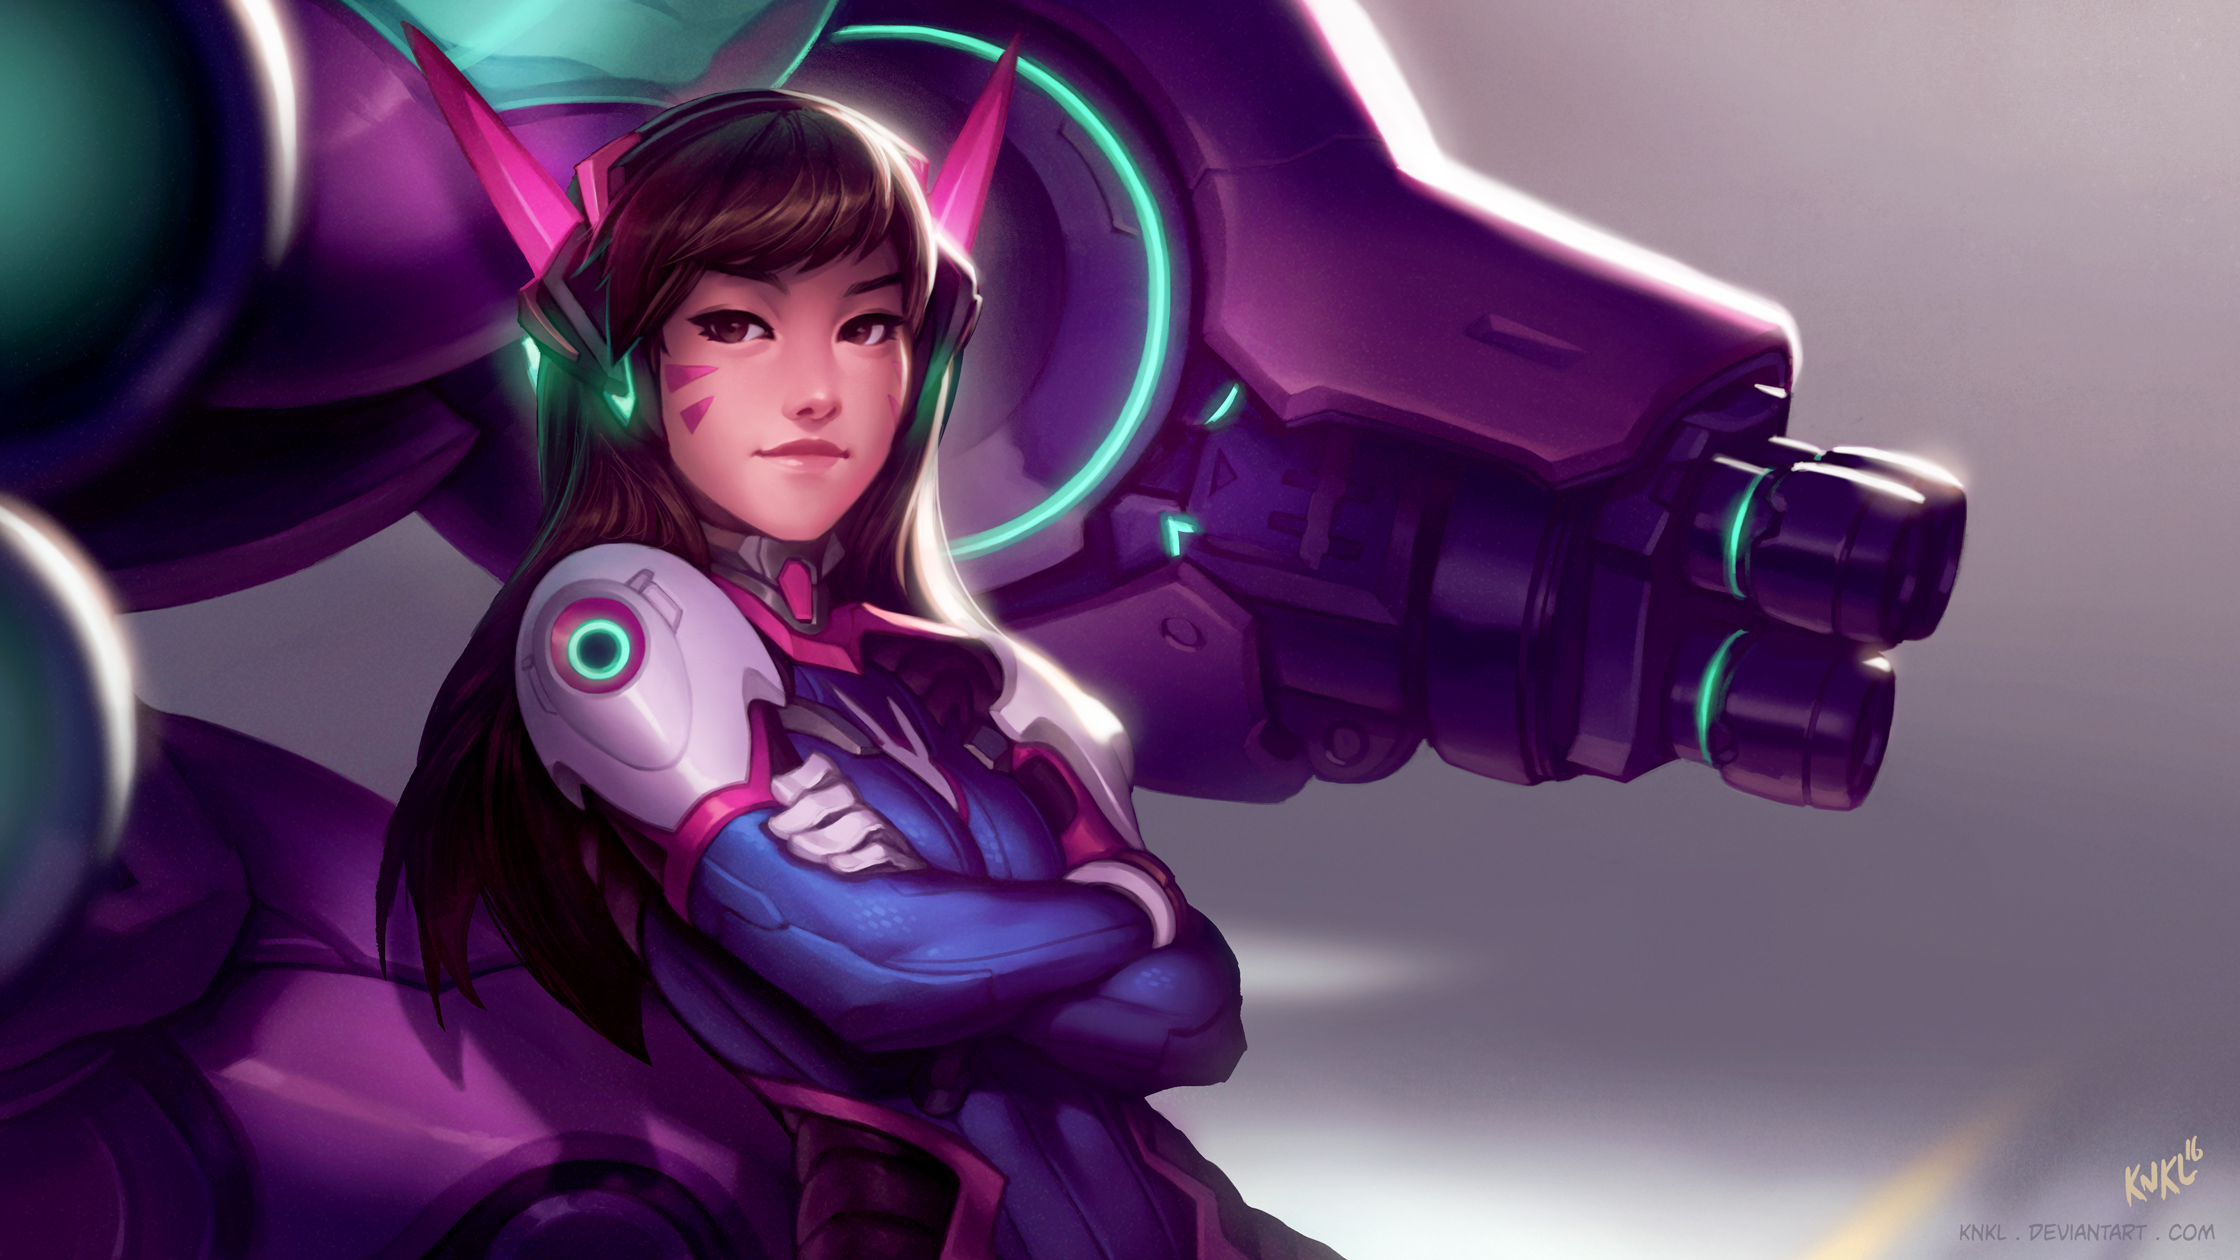 D.va Overwatch Promo by KNKL